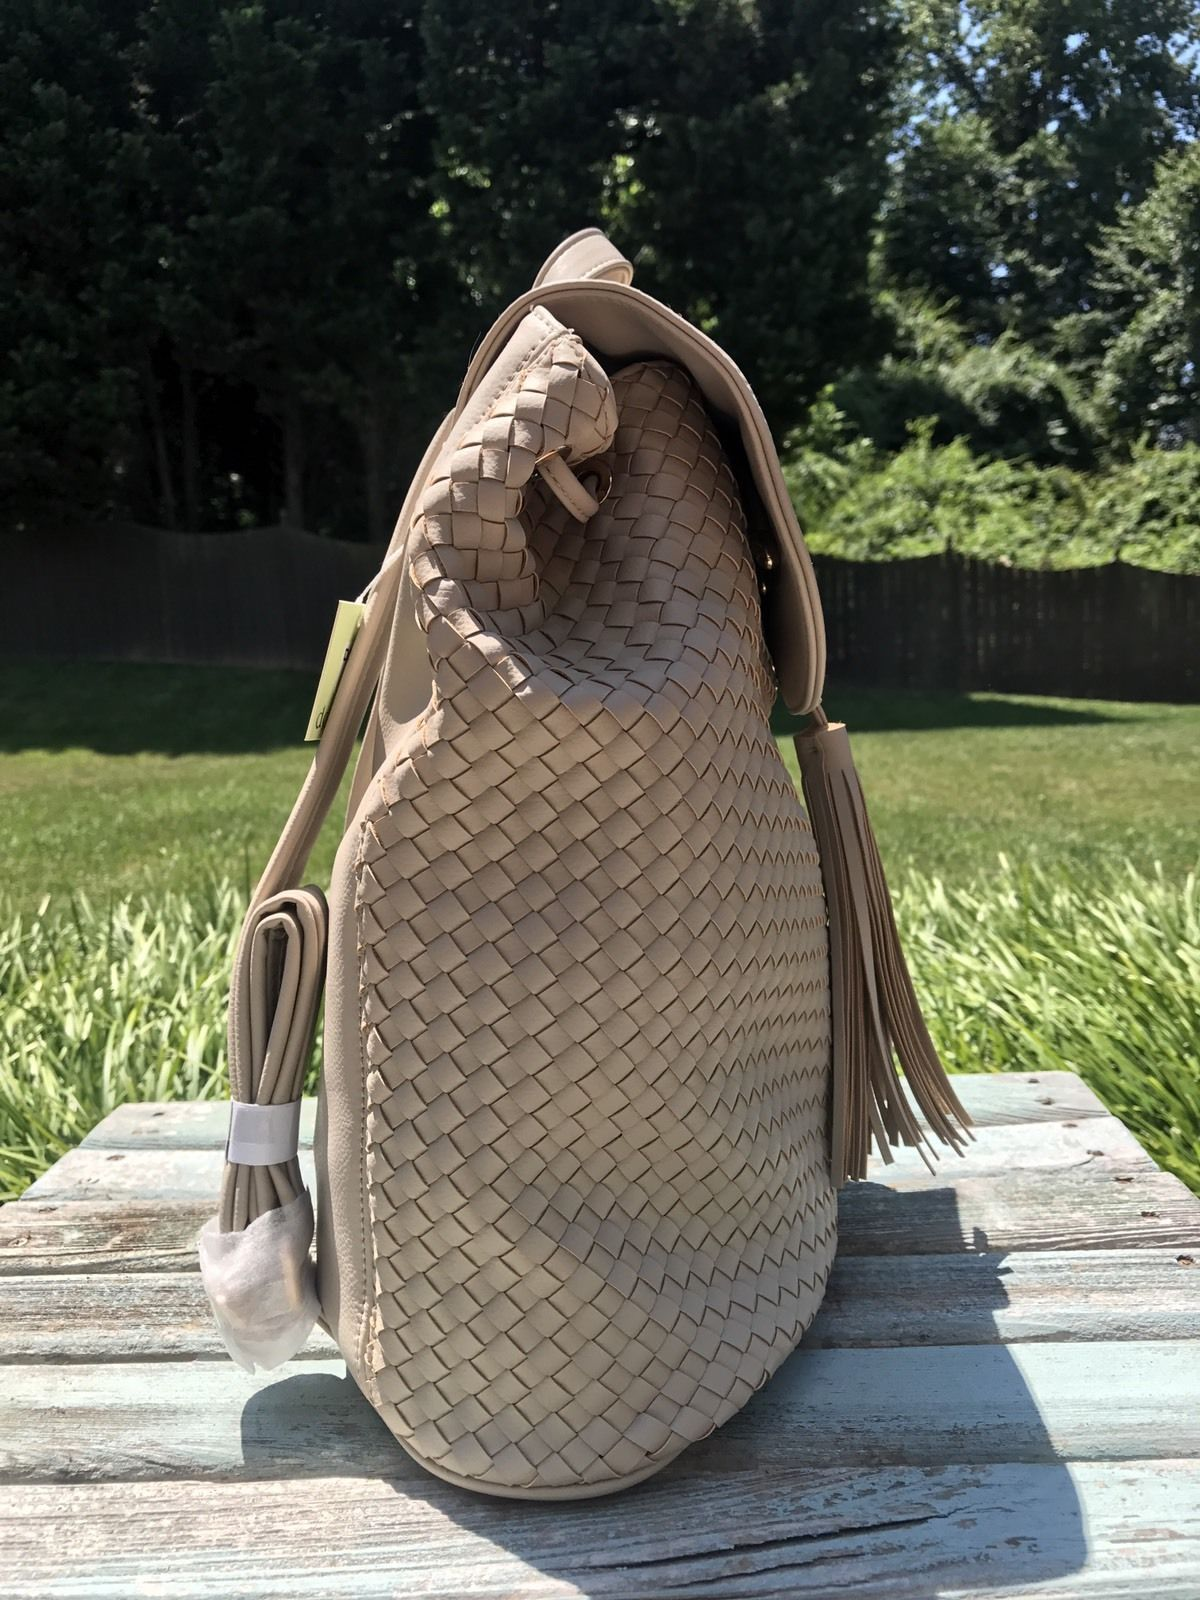 Deux Lux Luxury Bowery Backpack Camel/Off-White/Cream $130 NEW with tags NWT image 3